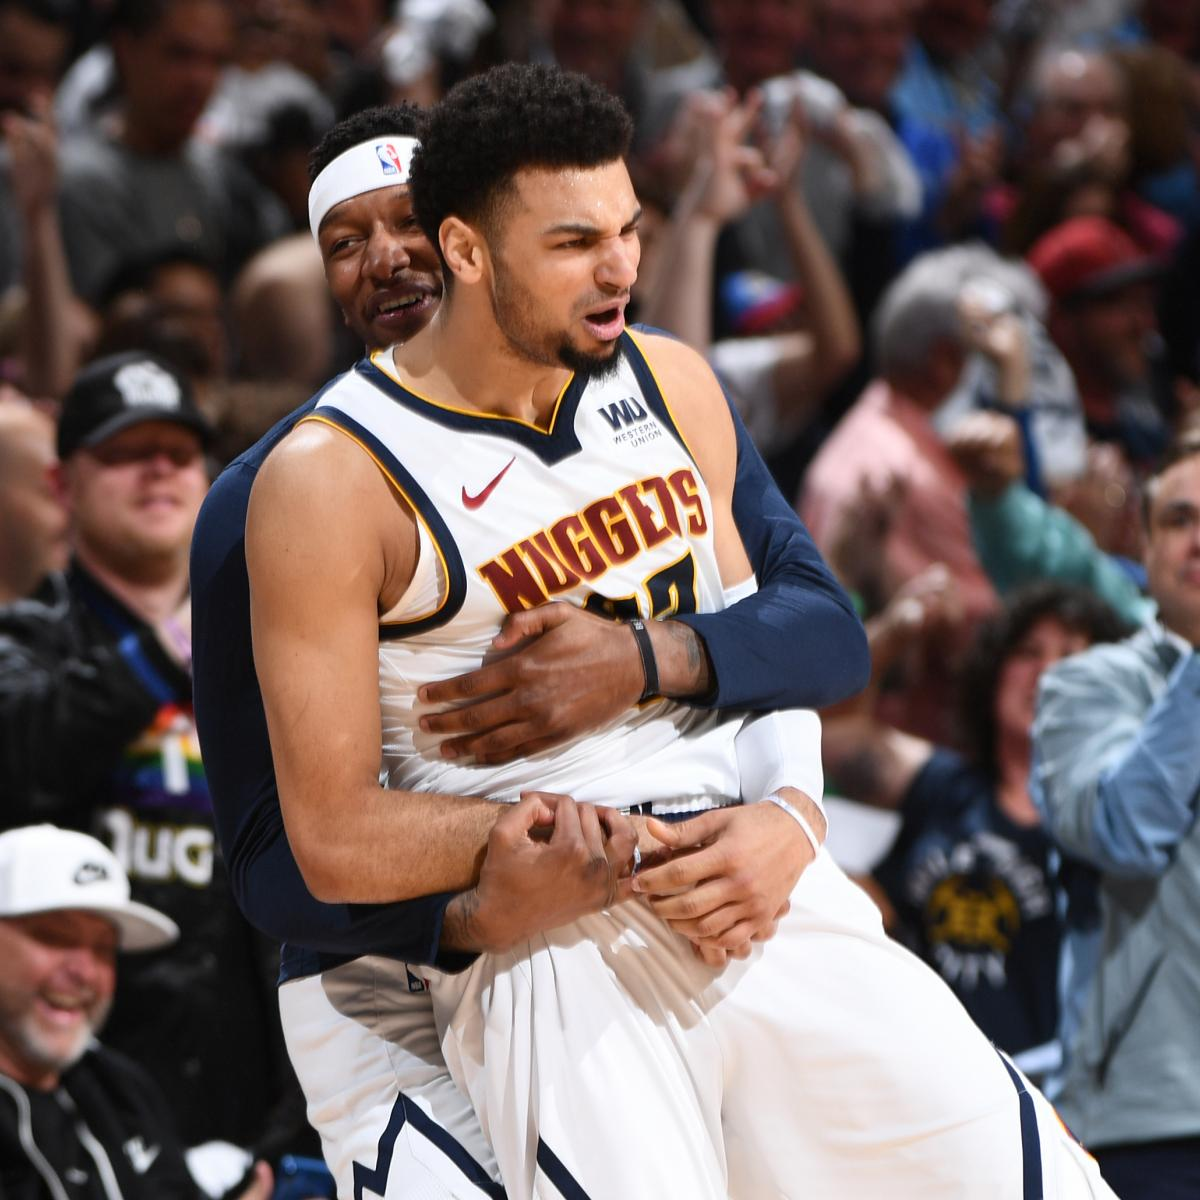 Nuggets Quarter Season Tickets: 22-Year-Old Jamal Murray's Absurd Game 2 Is Sign Of Future